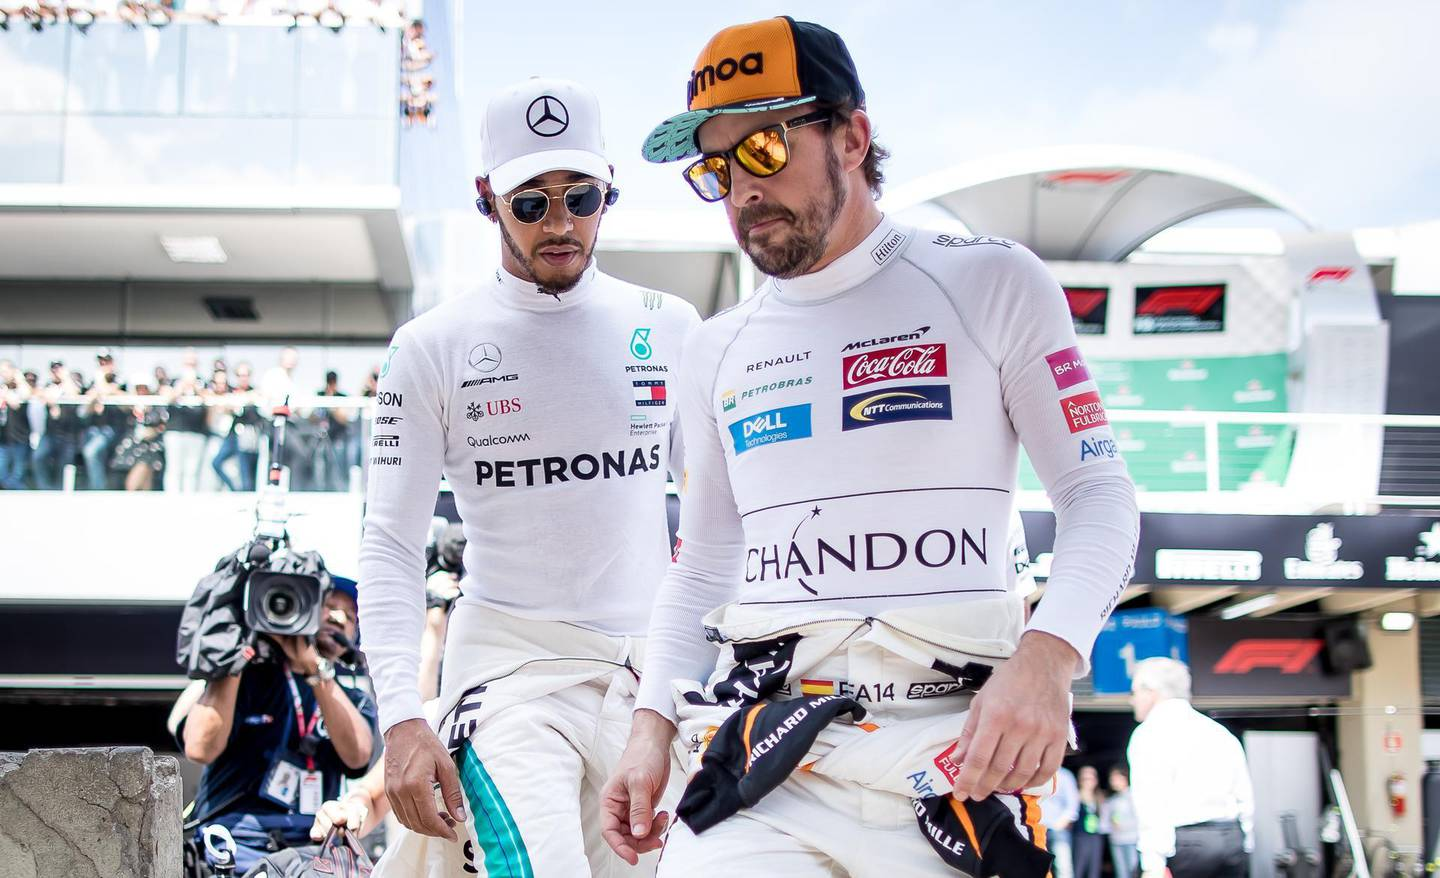 SAO PAULO, BRAZIL - NOVEMBER 11:  Fernando Alonso of Spain and McLaren F1 and Lewis Hamilton of Great Britain and Mercedes GP walk to the grid before the Formula One Grand Prix of Brazil at Autodromo Jose Carlos Pace on November 11, 2018 in Sao Paulo, Brazil.  (Photo by Lars Baron/Getty Images)